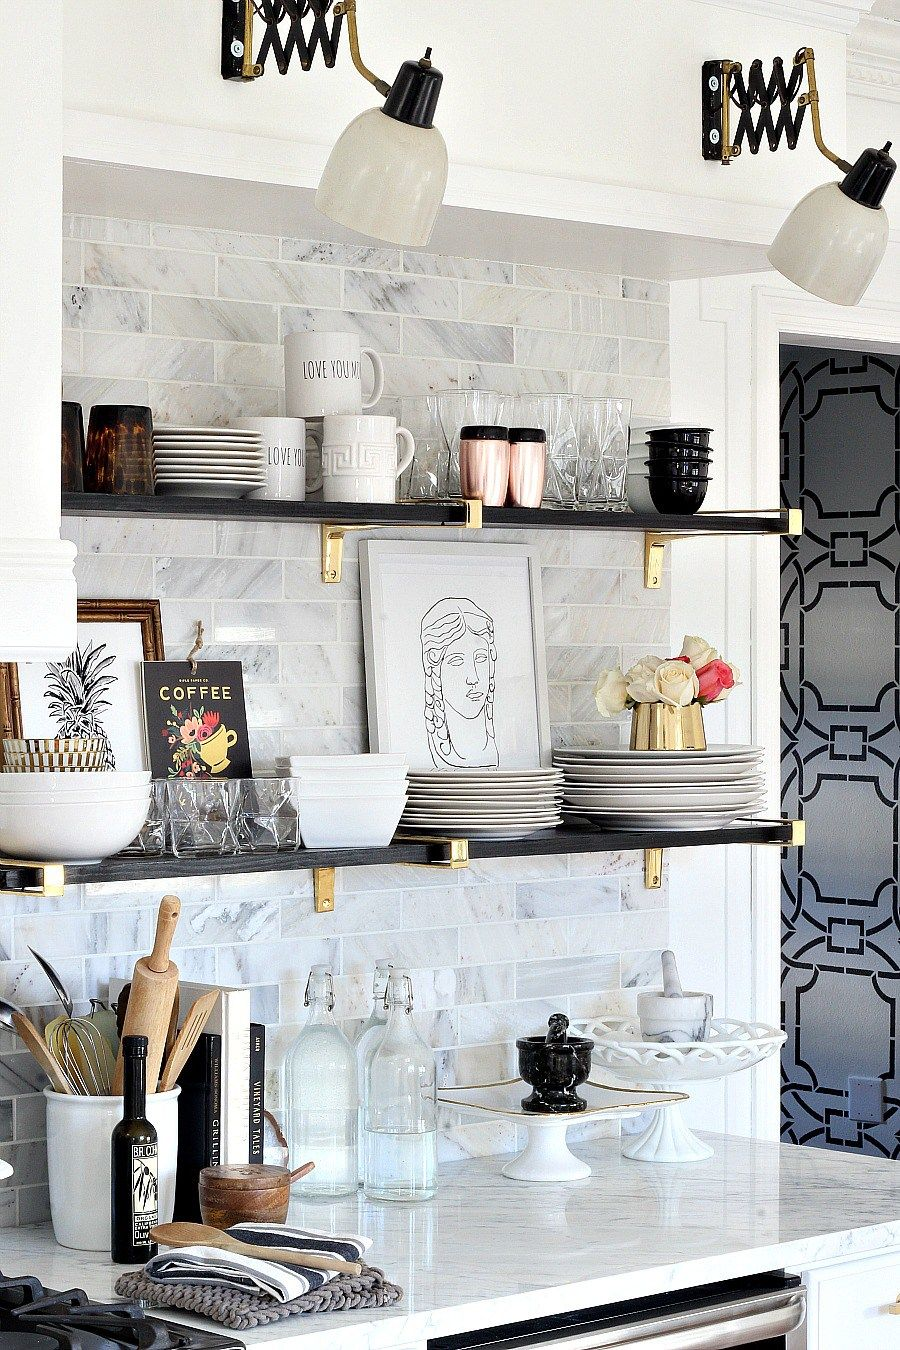 tricks make small kitchen look bigger kuchnia black floating shelves inch bathroom shelf laminate countertop ideas art deco ceiling light diy hanging wall shelving support clips